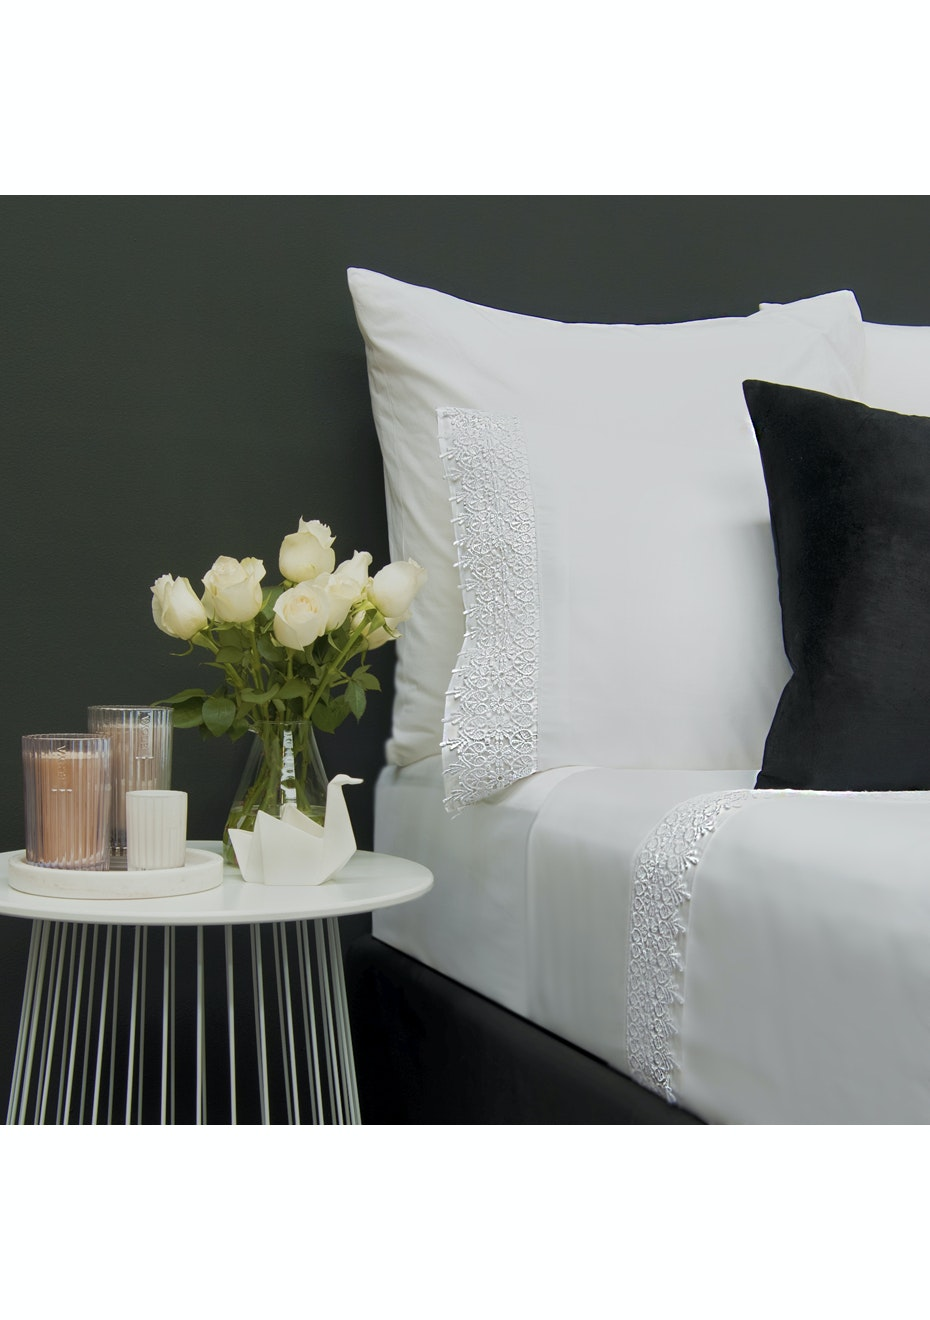 Style & Co 1000 Thread count Egyptian Cotton Hotel Collection Valencia Sheet sets Queen White